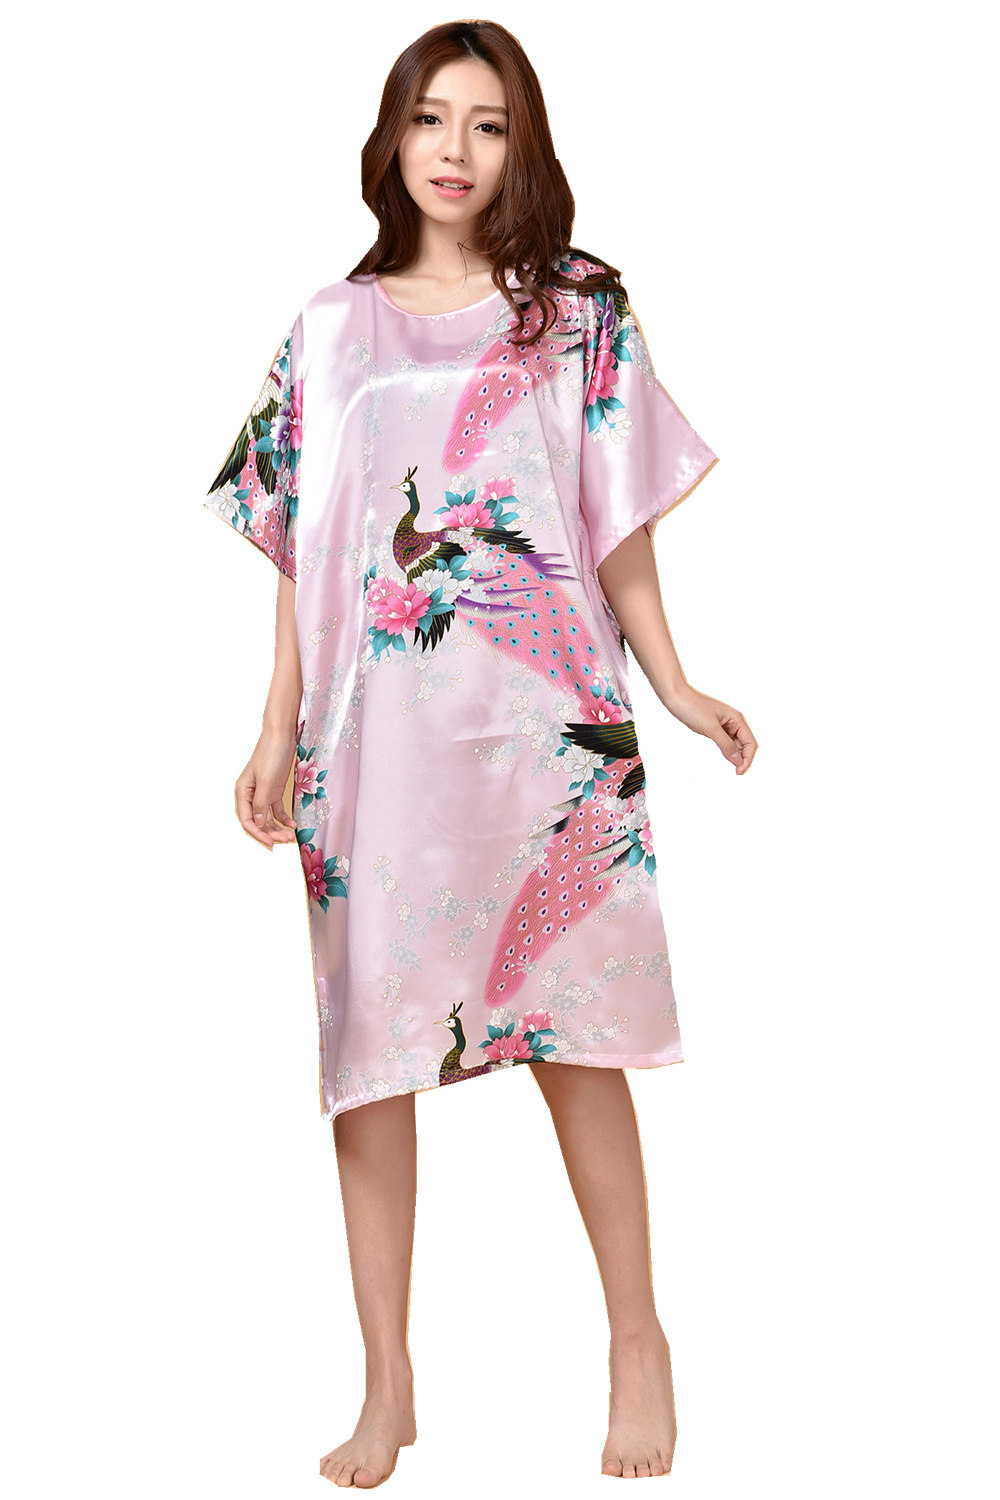 Plus Size Pink Summer Women's Robe Bathrobe Sleepwear New chinese Female Rayon Bath Gown   Nightgown     Sleepshirts   Mujer Pijama 002